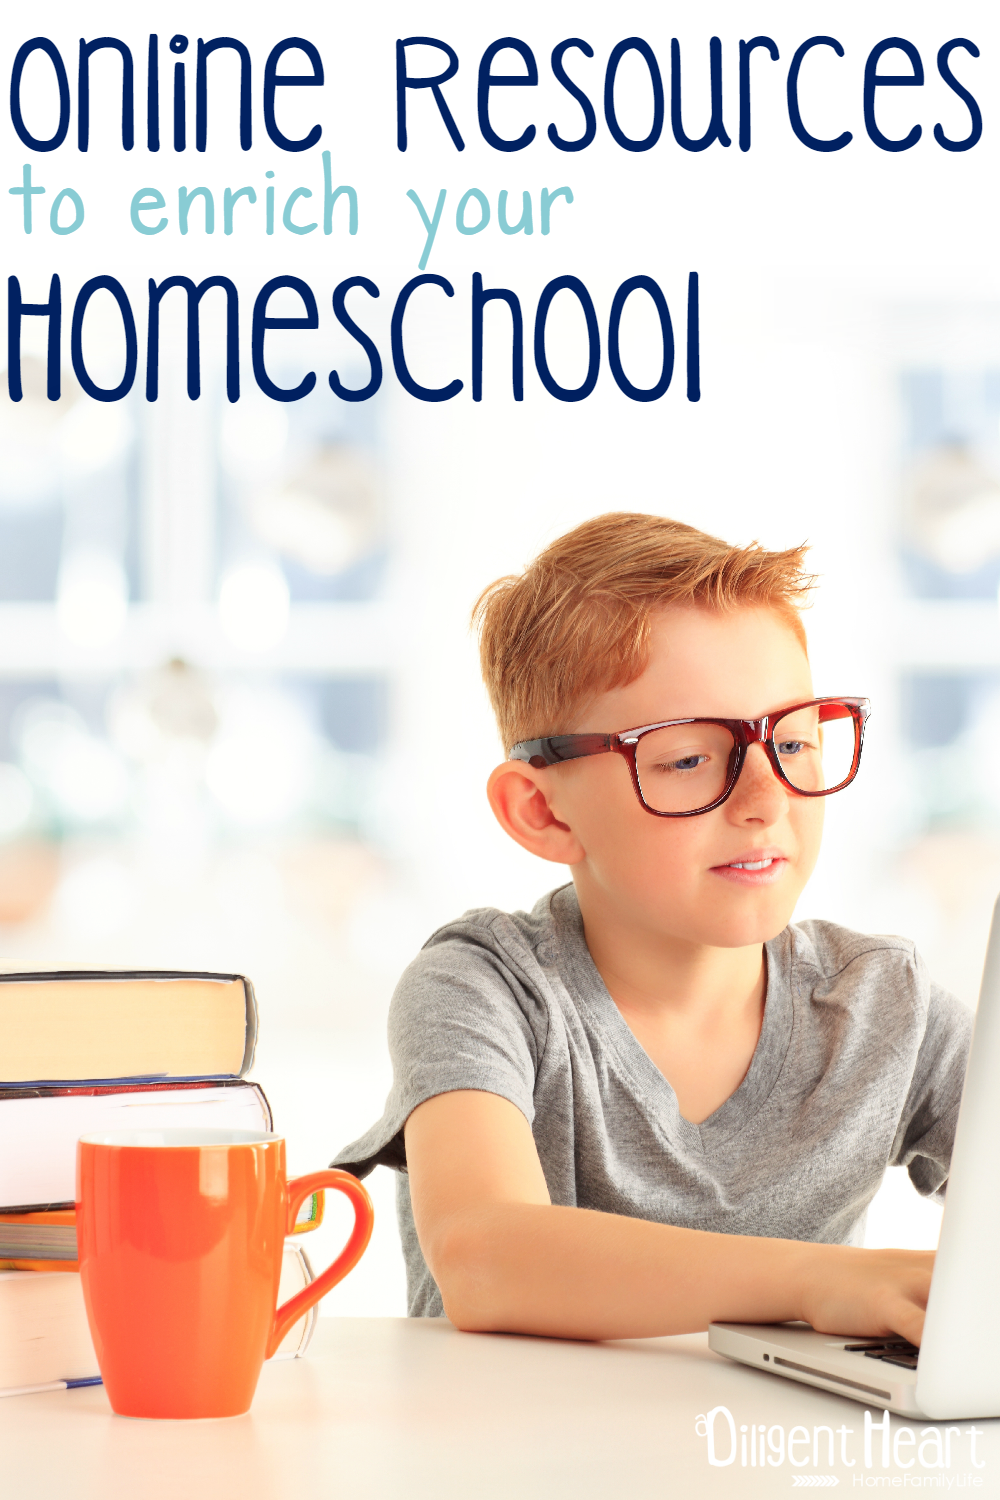 I'm a big fan of using online resources to enrich our homeschool. These are some of my favorite resources to use. We use them often, and some of them are used on a weekly basis. Online Resources to enrich your Homeschool I adiligentheart.com